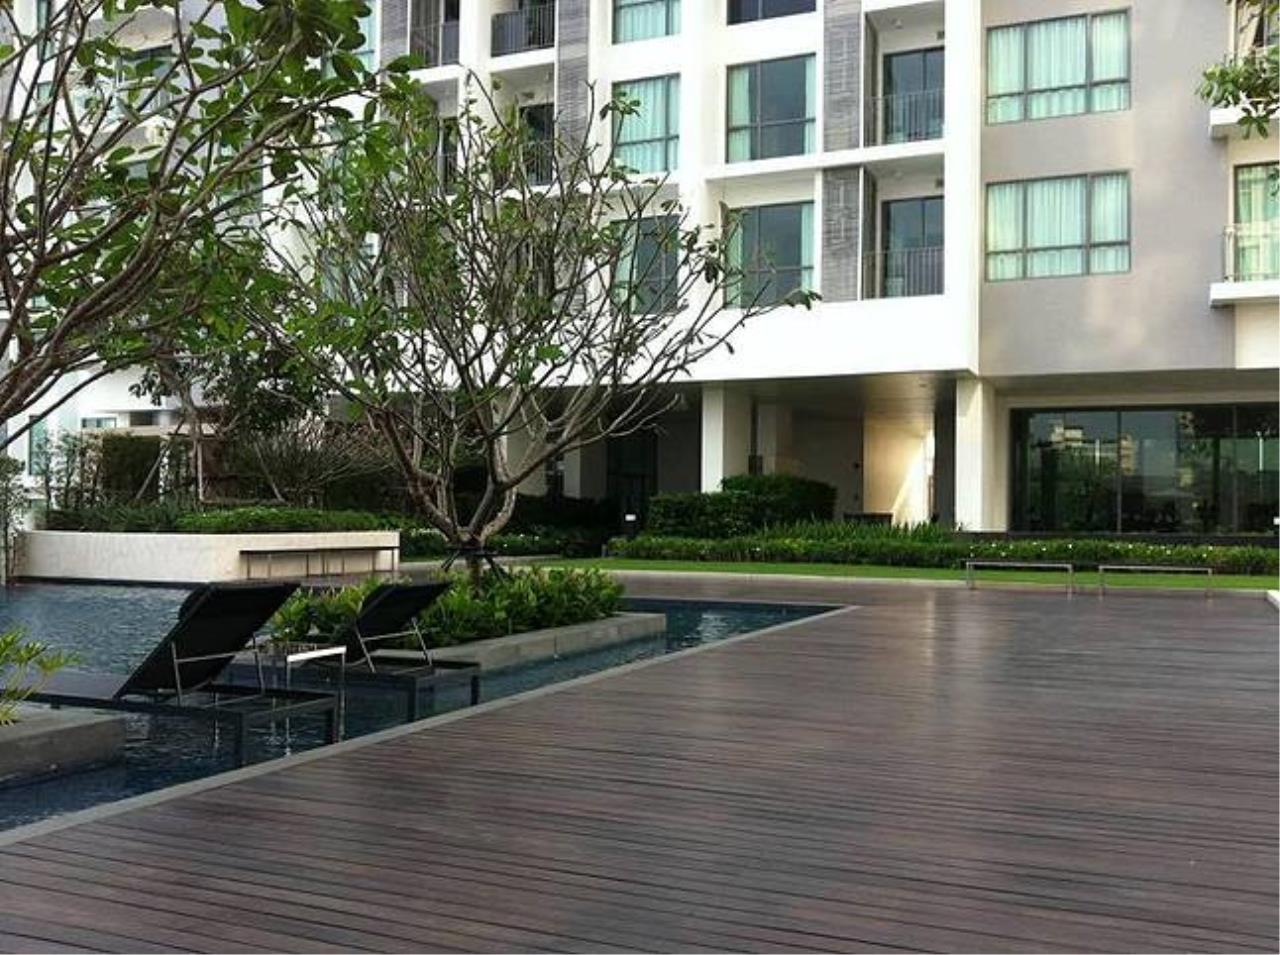 Quality Life Property Agency's S A L E & R E N T ! The Room Sukhumvit 62 | 1 BED 1 BATH | 41.35 SQ. M. 1